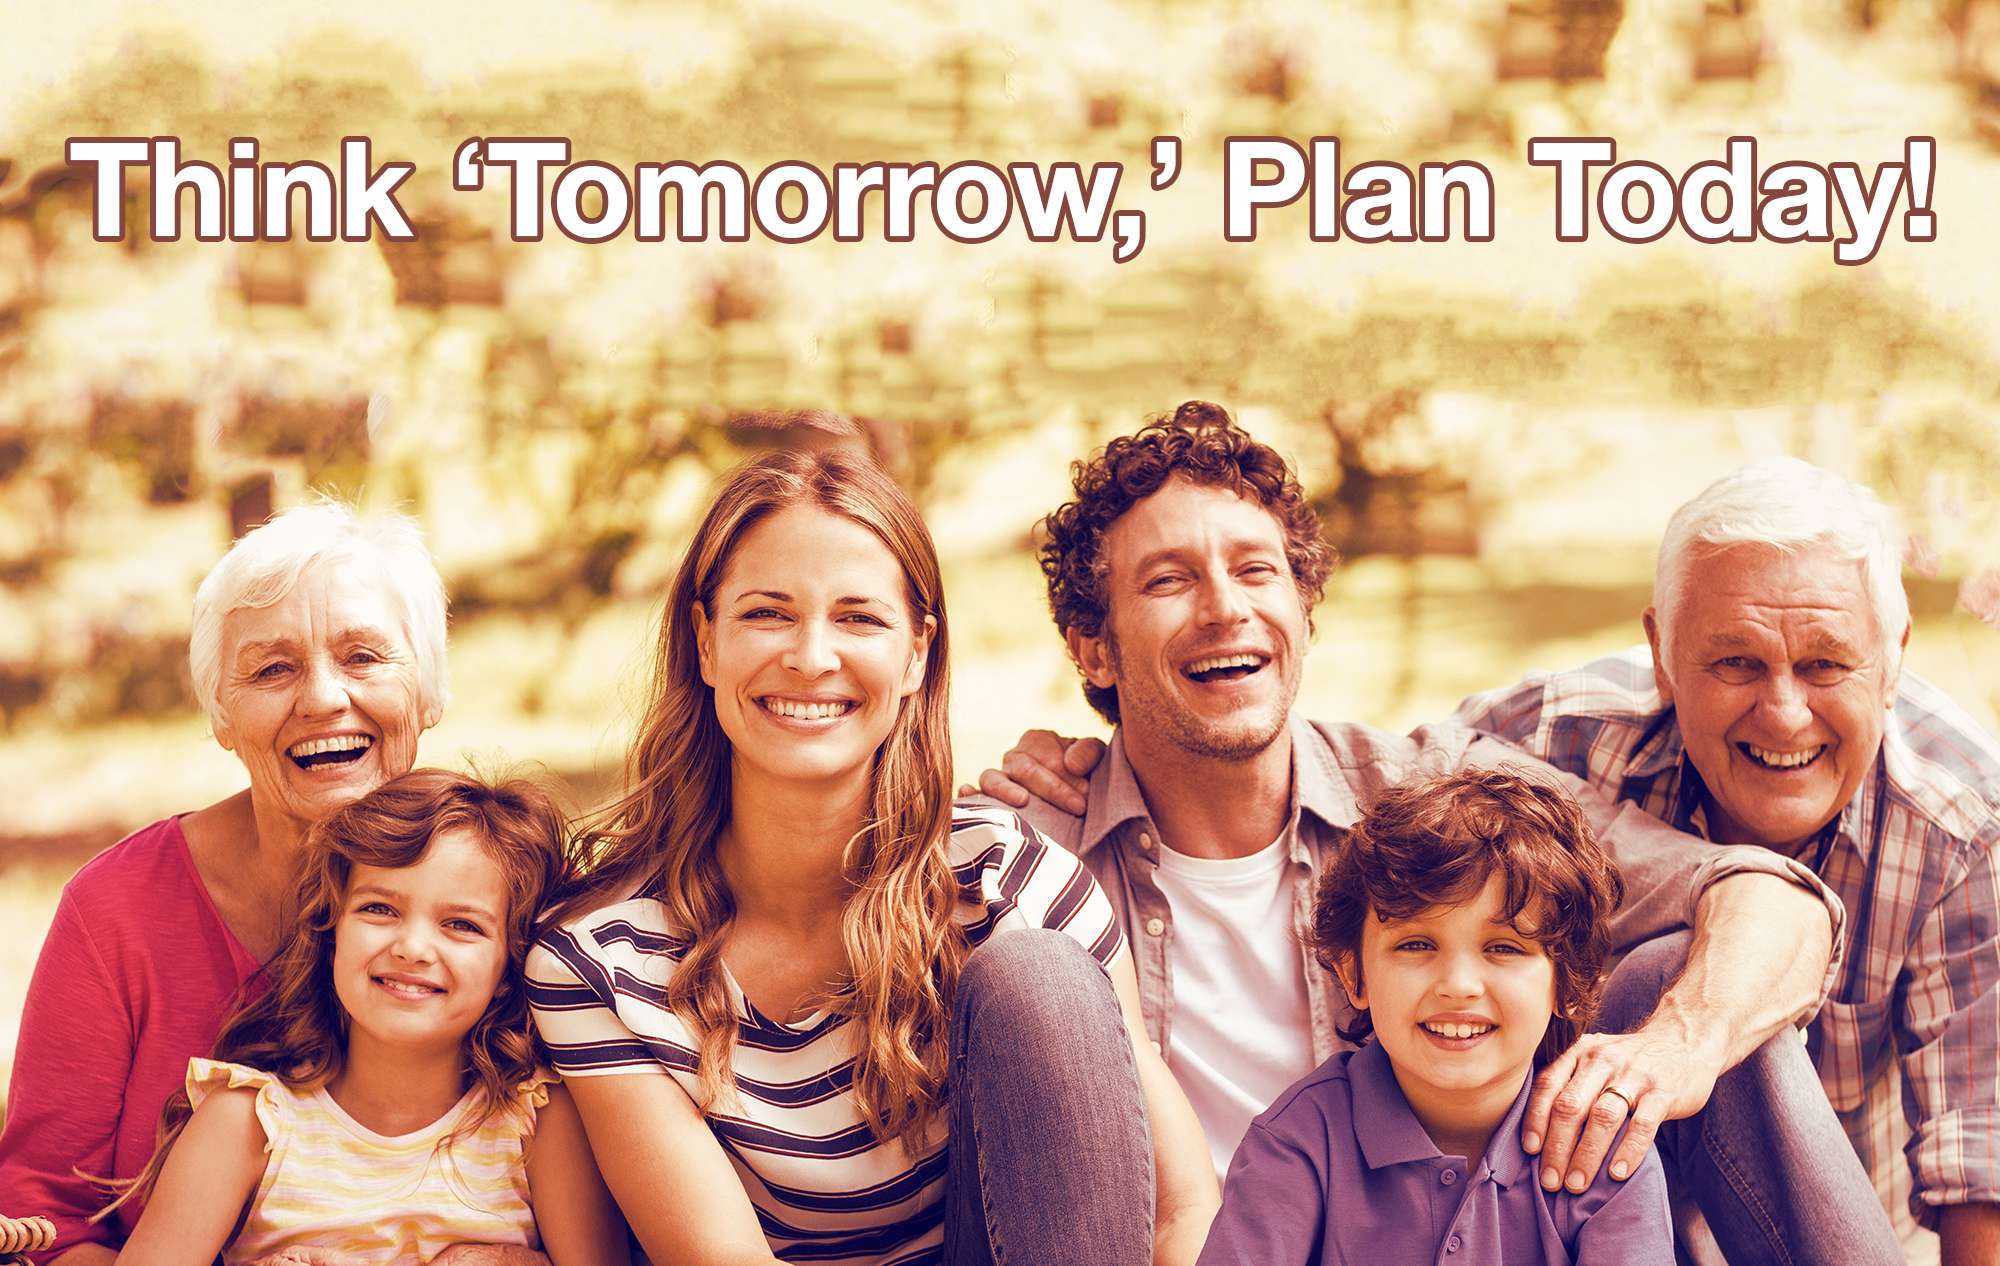 Think 'tomorrow,' Plan today!